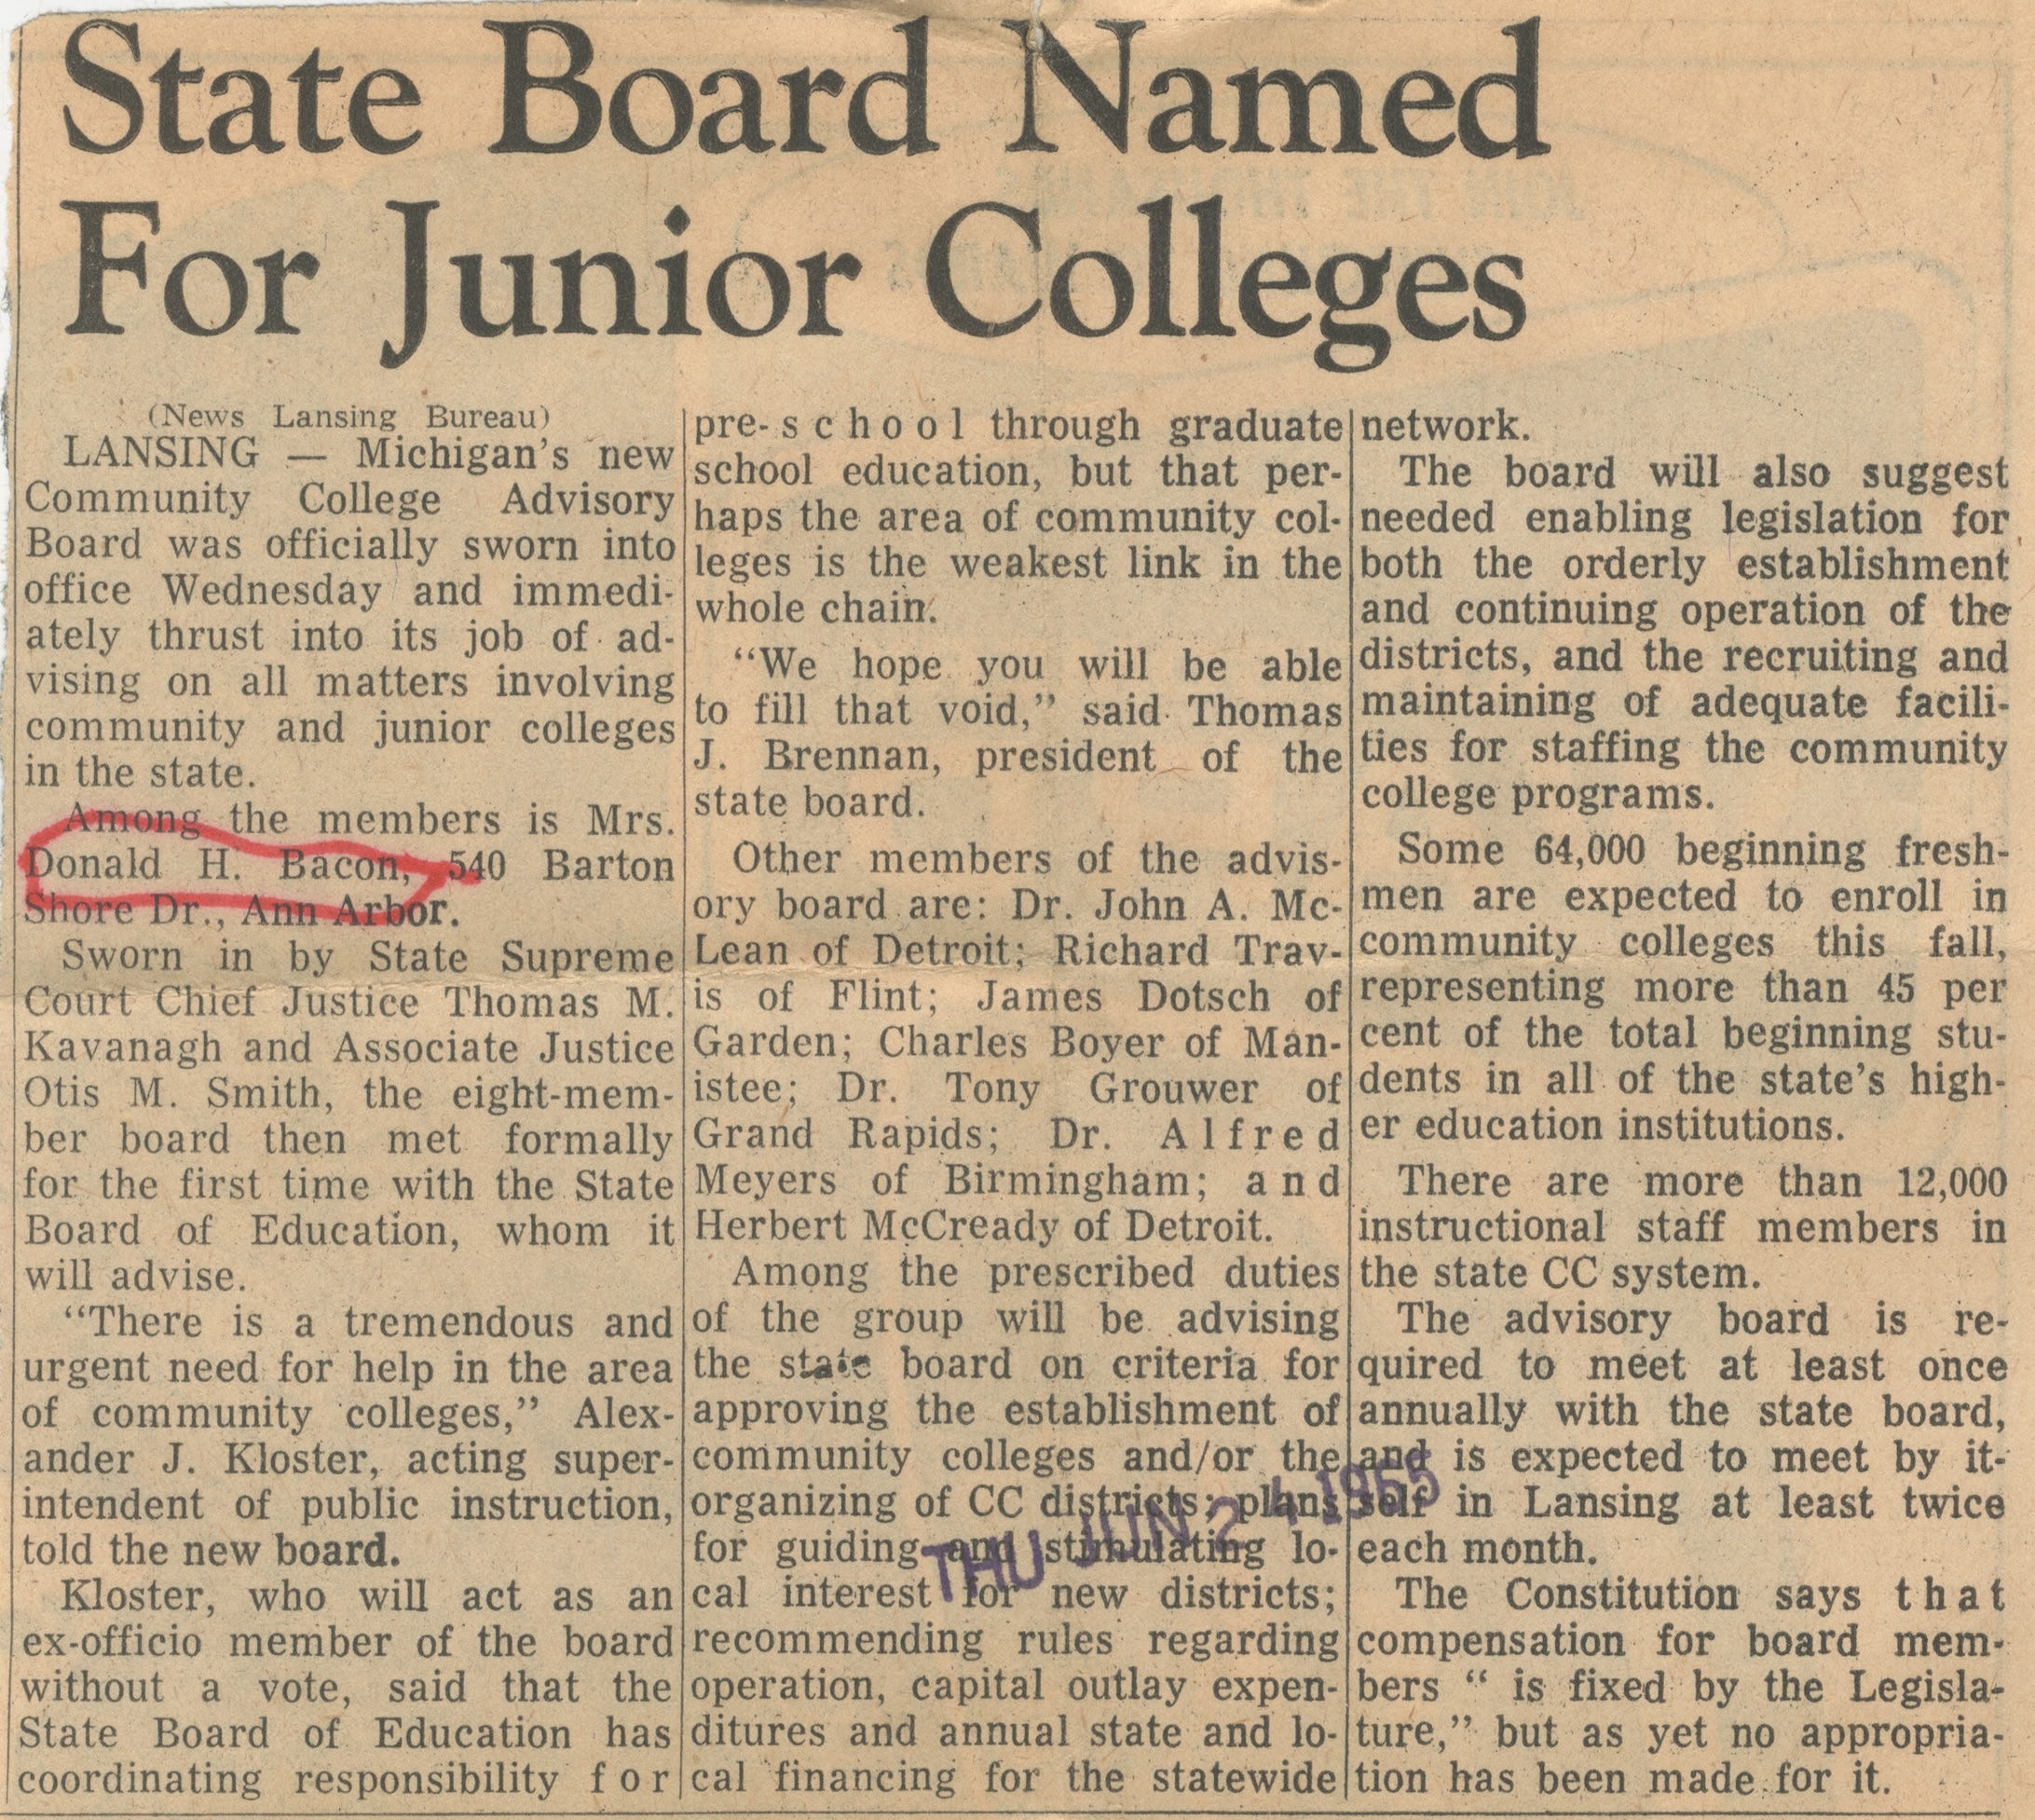 State Board Named For Junior College image